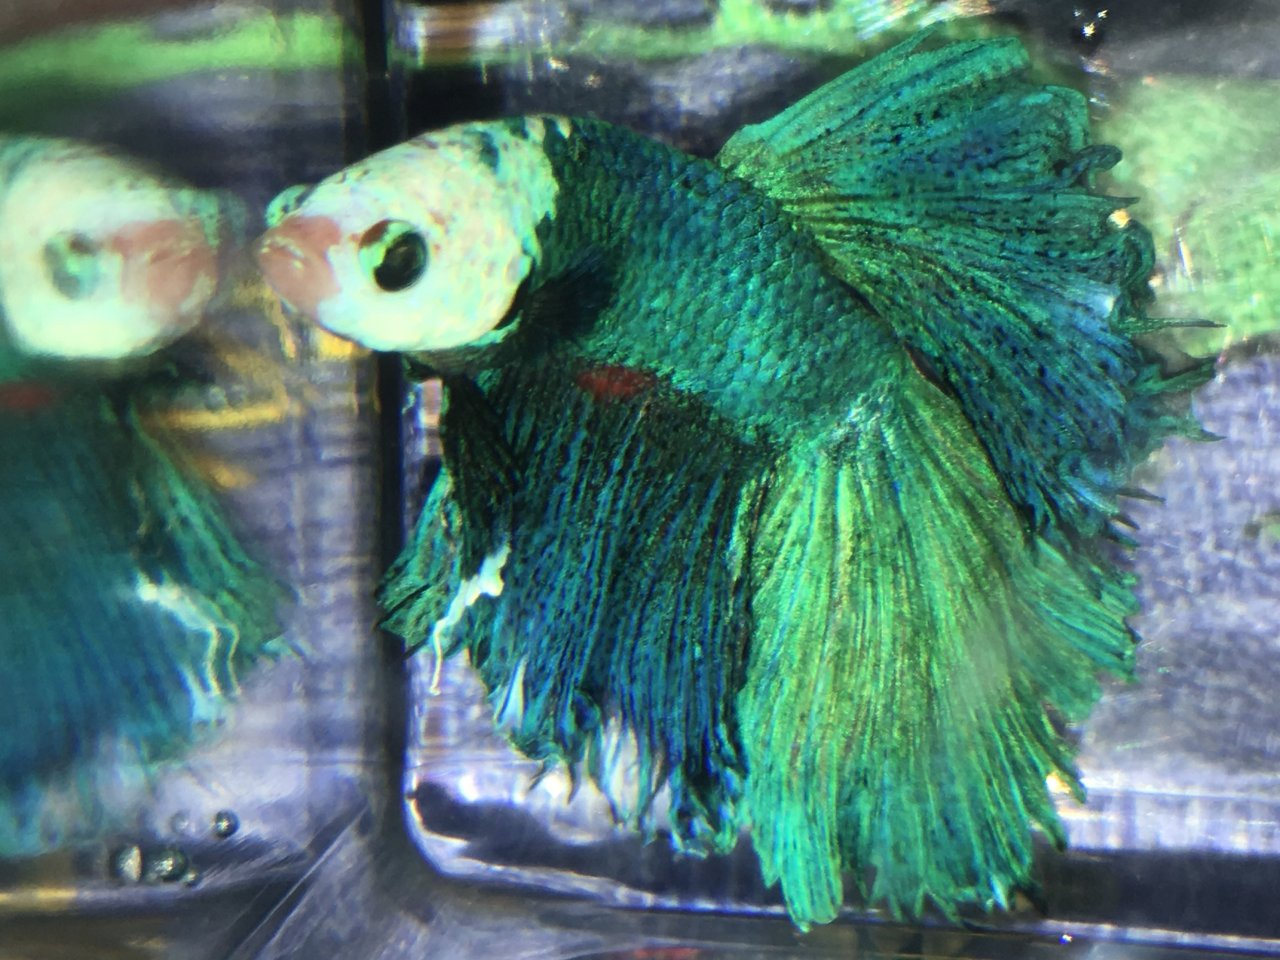 Extremely Lethargic Betta Fish, Face Changing Colour | My Aquarium Club